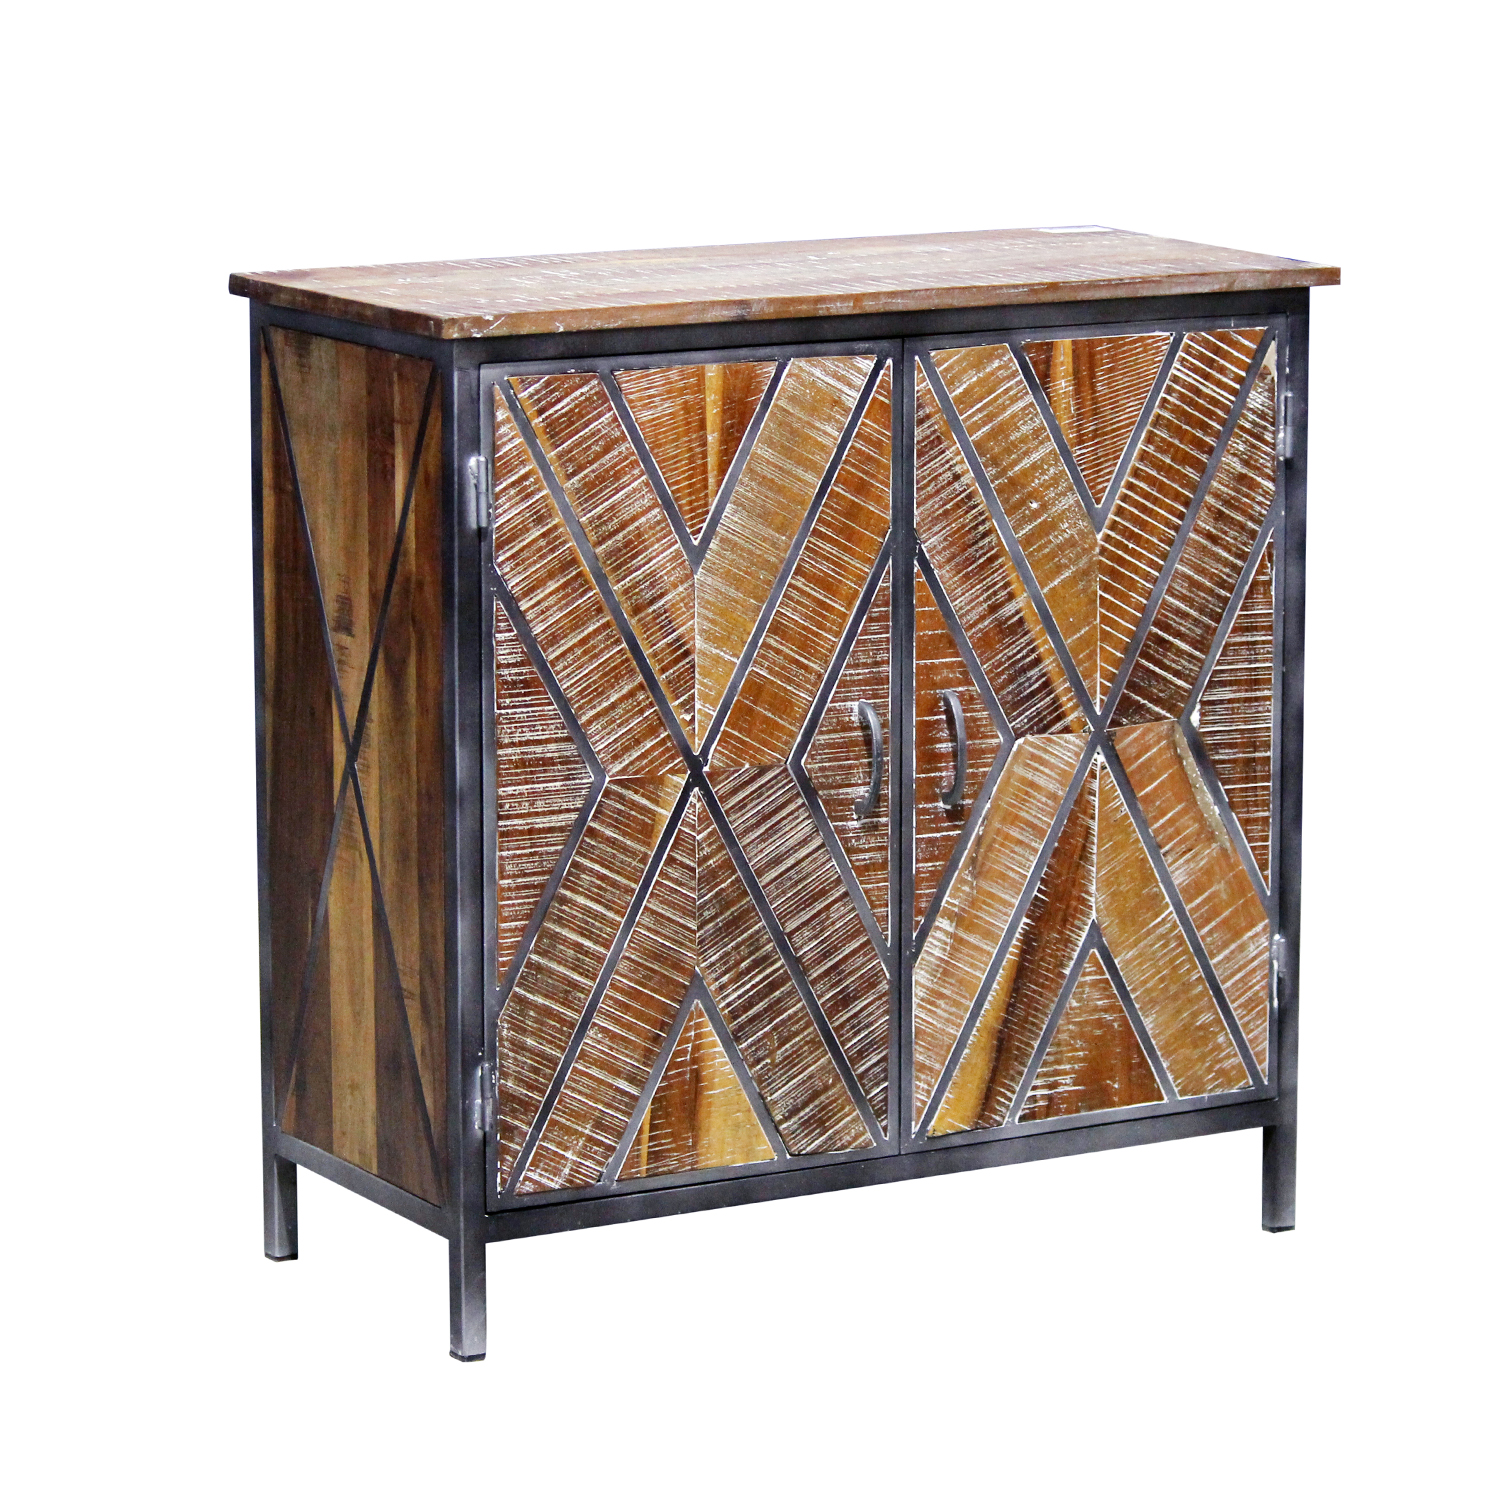 Industrial Rustic Cabinet For Home Vintage Sideboard Recycle Wood Storage Cabinet Manufacturer Of Indian Handcrafted Articles Buy Bedroom Cabinets Living Room Furniture Rustic Kitchen Cabinets Product On Alibaba Com